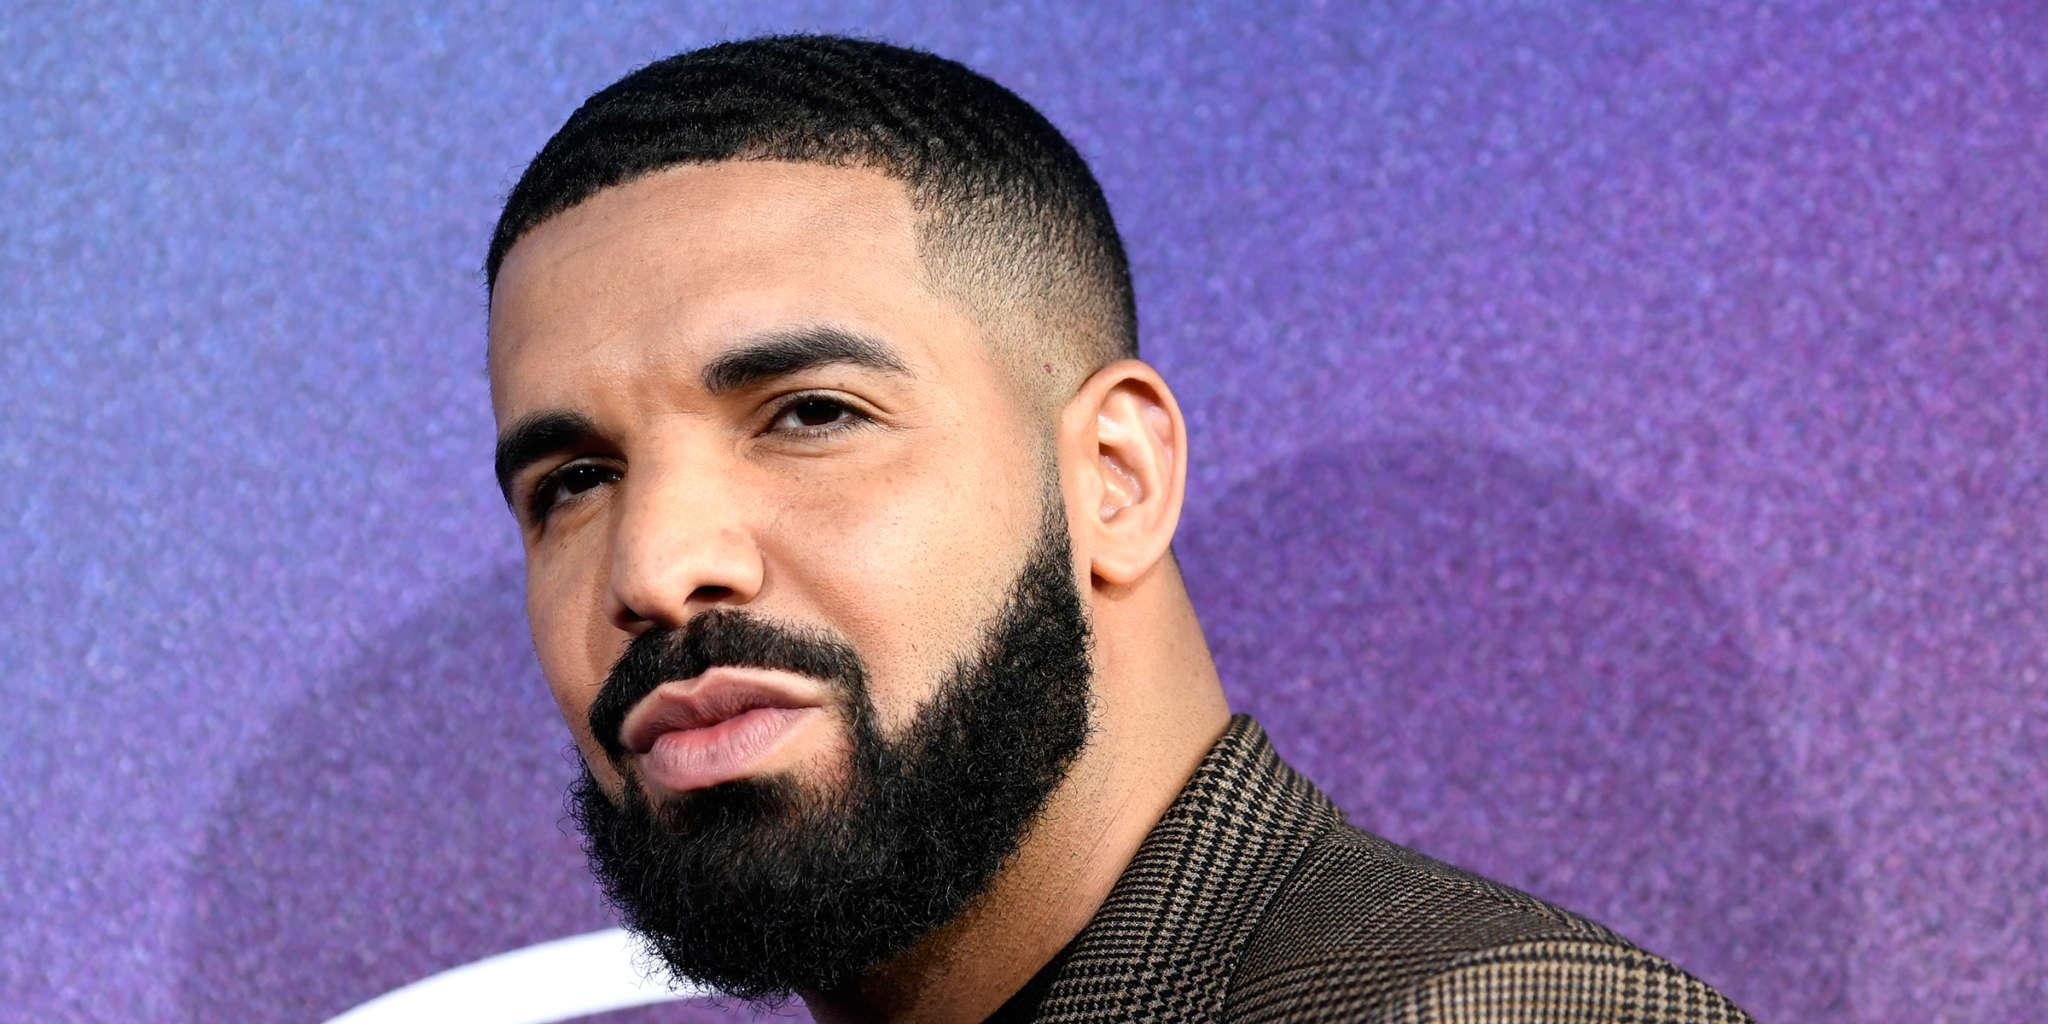 Drake Is Excited To Spend The Holidays With His Son Adonis - Source Says The Proud Father 'Loves Showing Him Off'